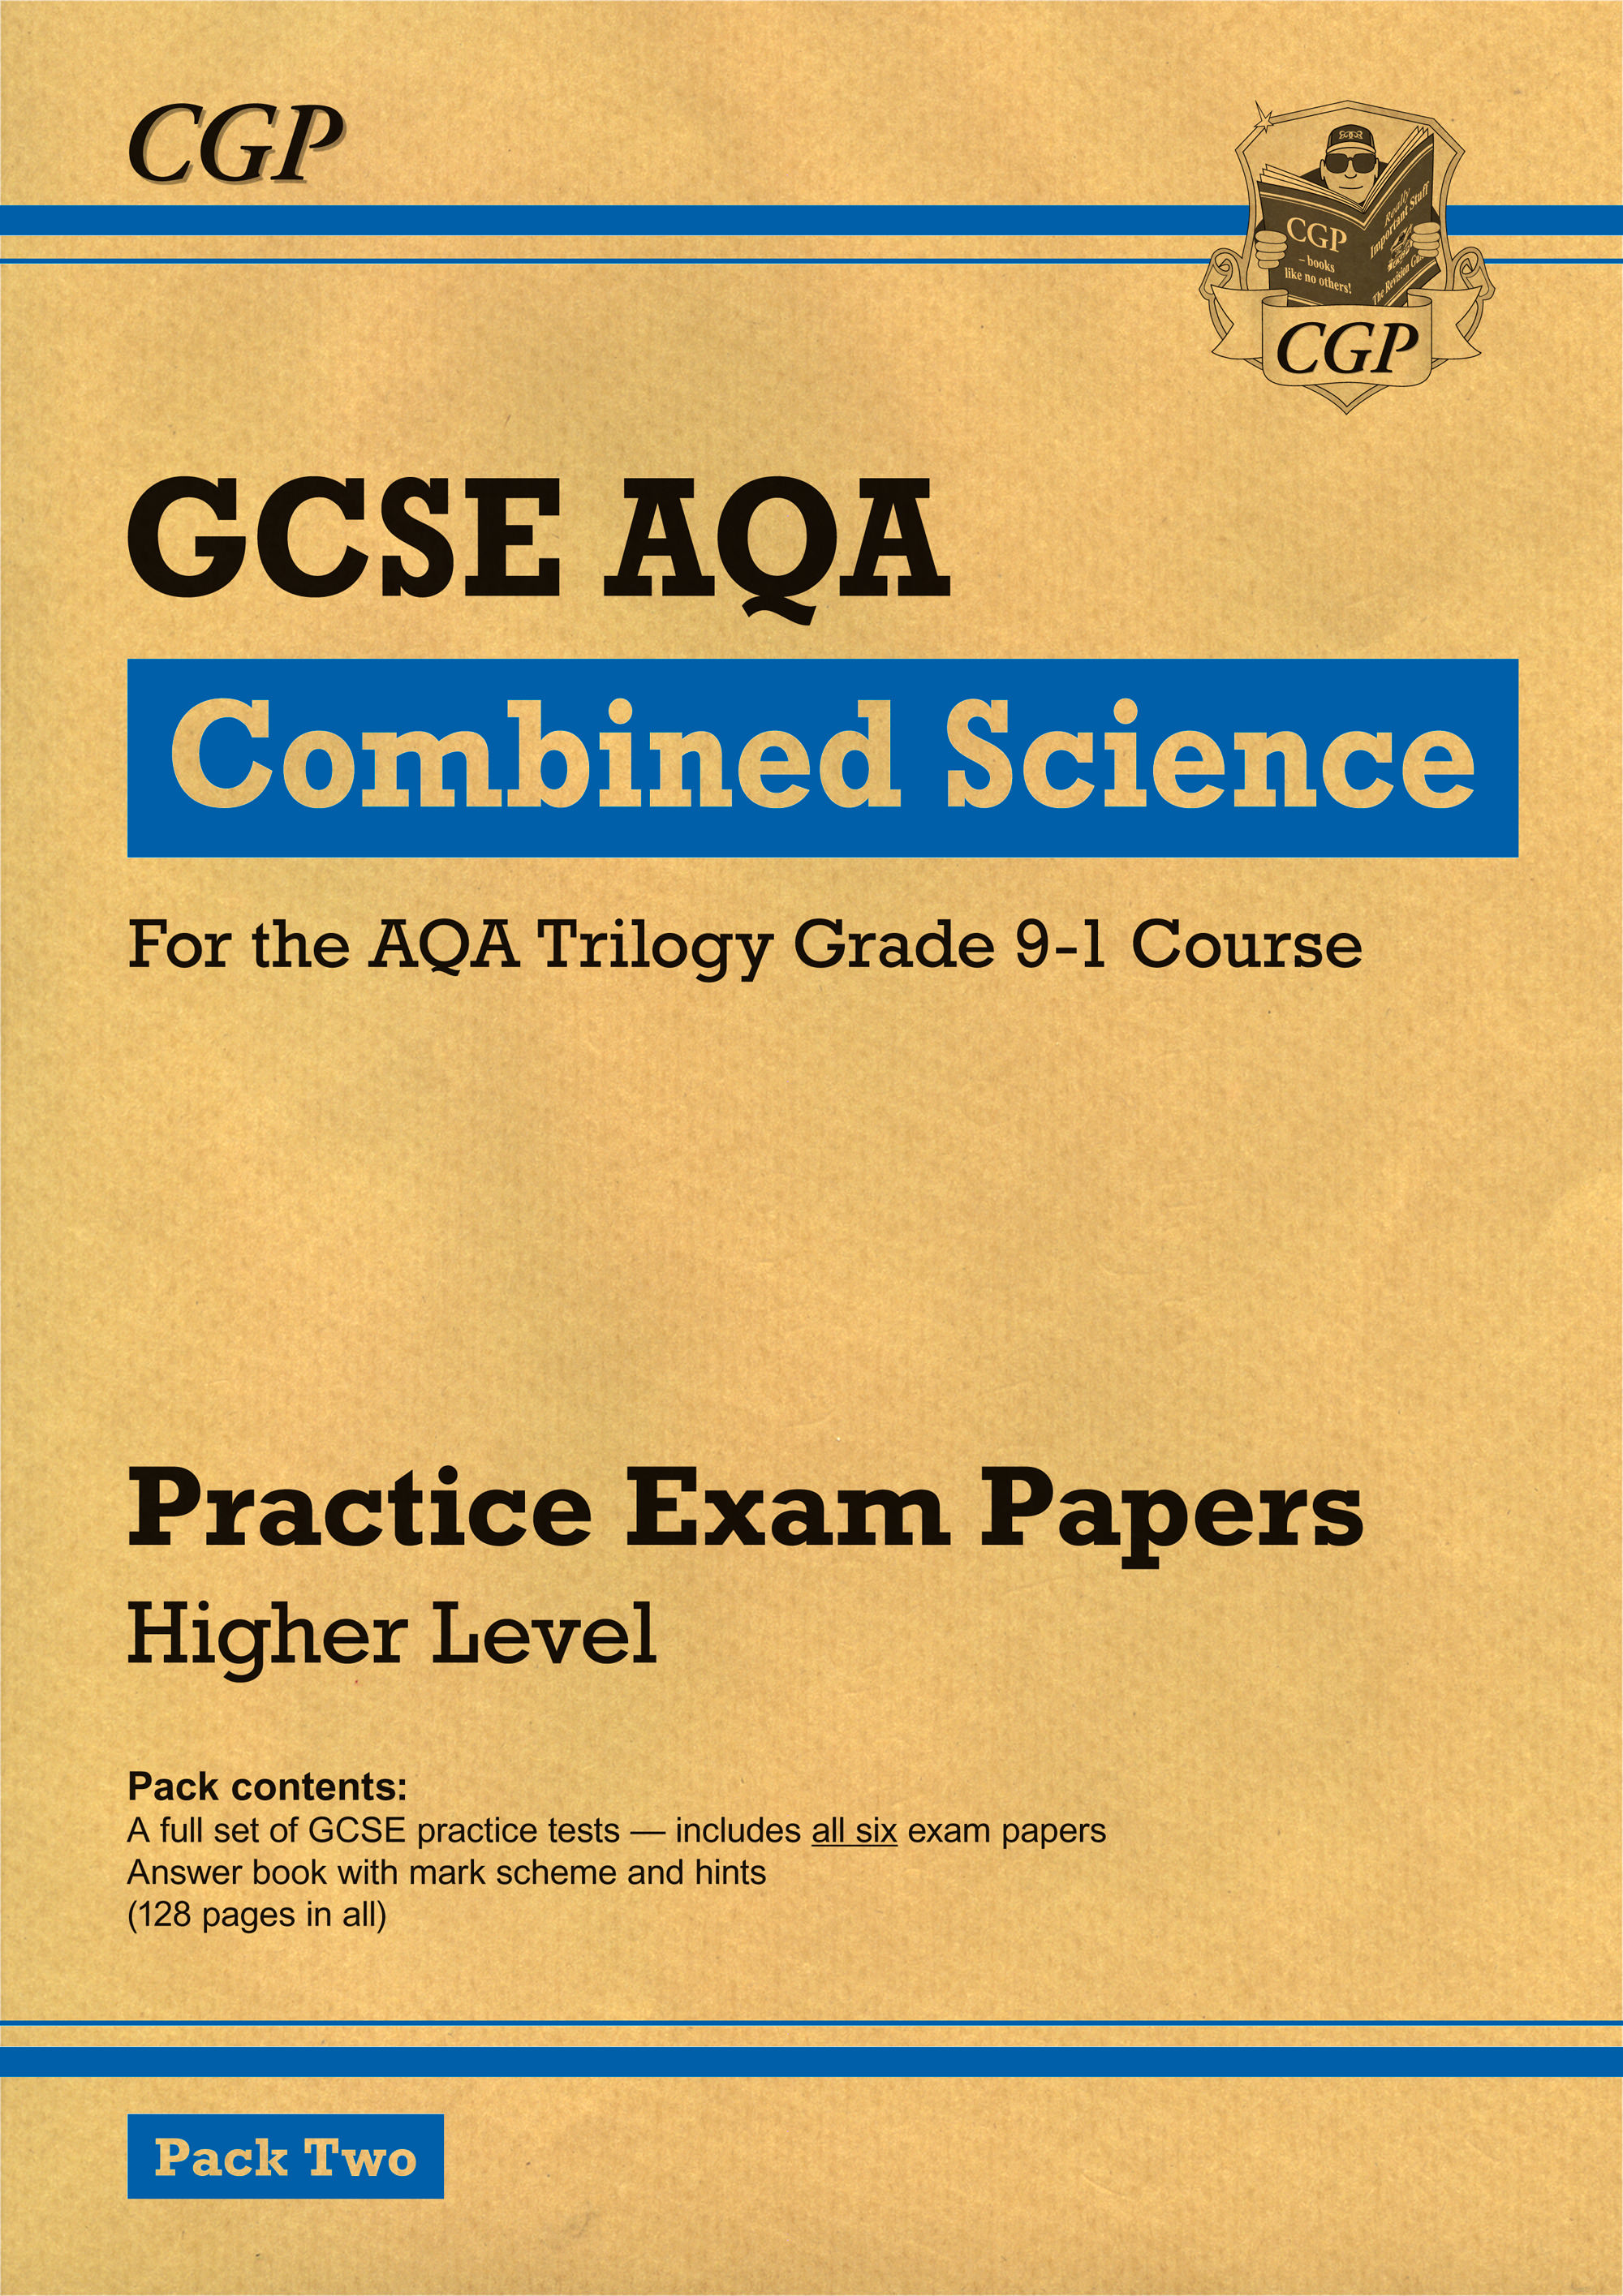 SAHP241 - Grade 9-1 GCSE Combined Science AQA Practice Papers: Higher Pack 2